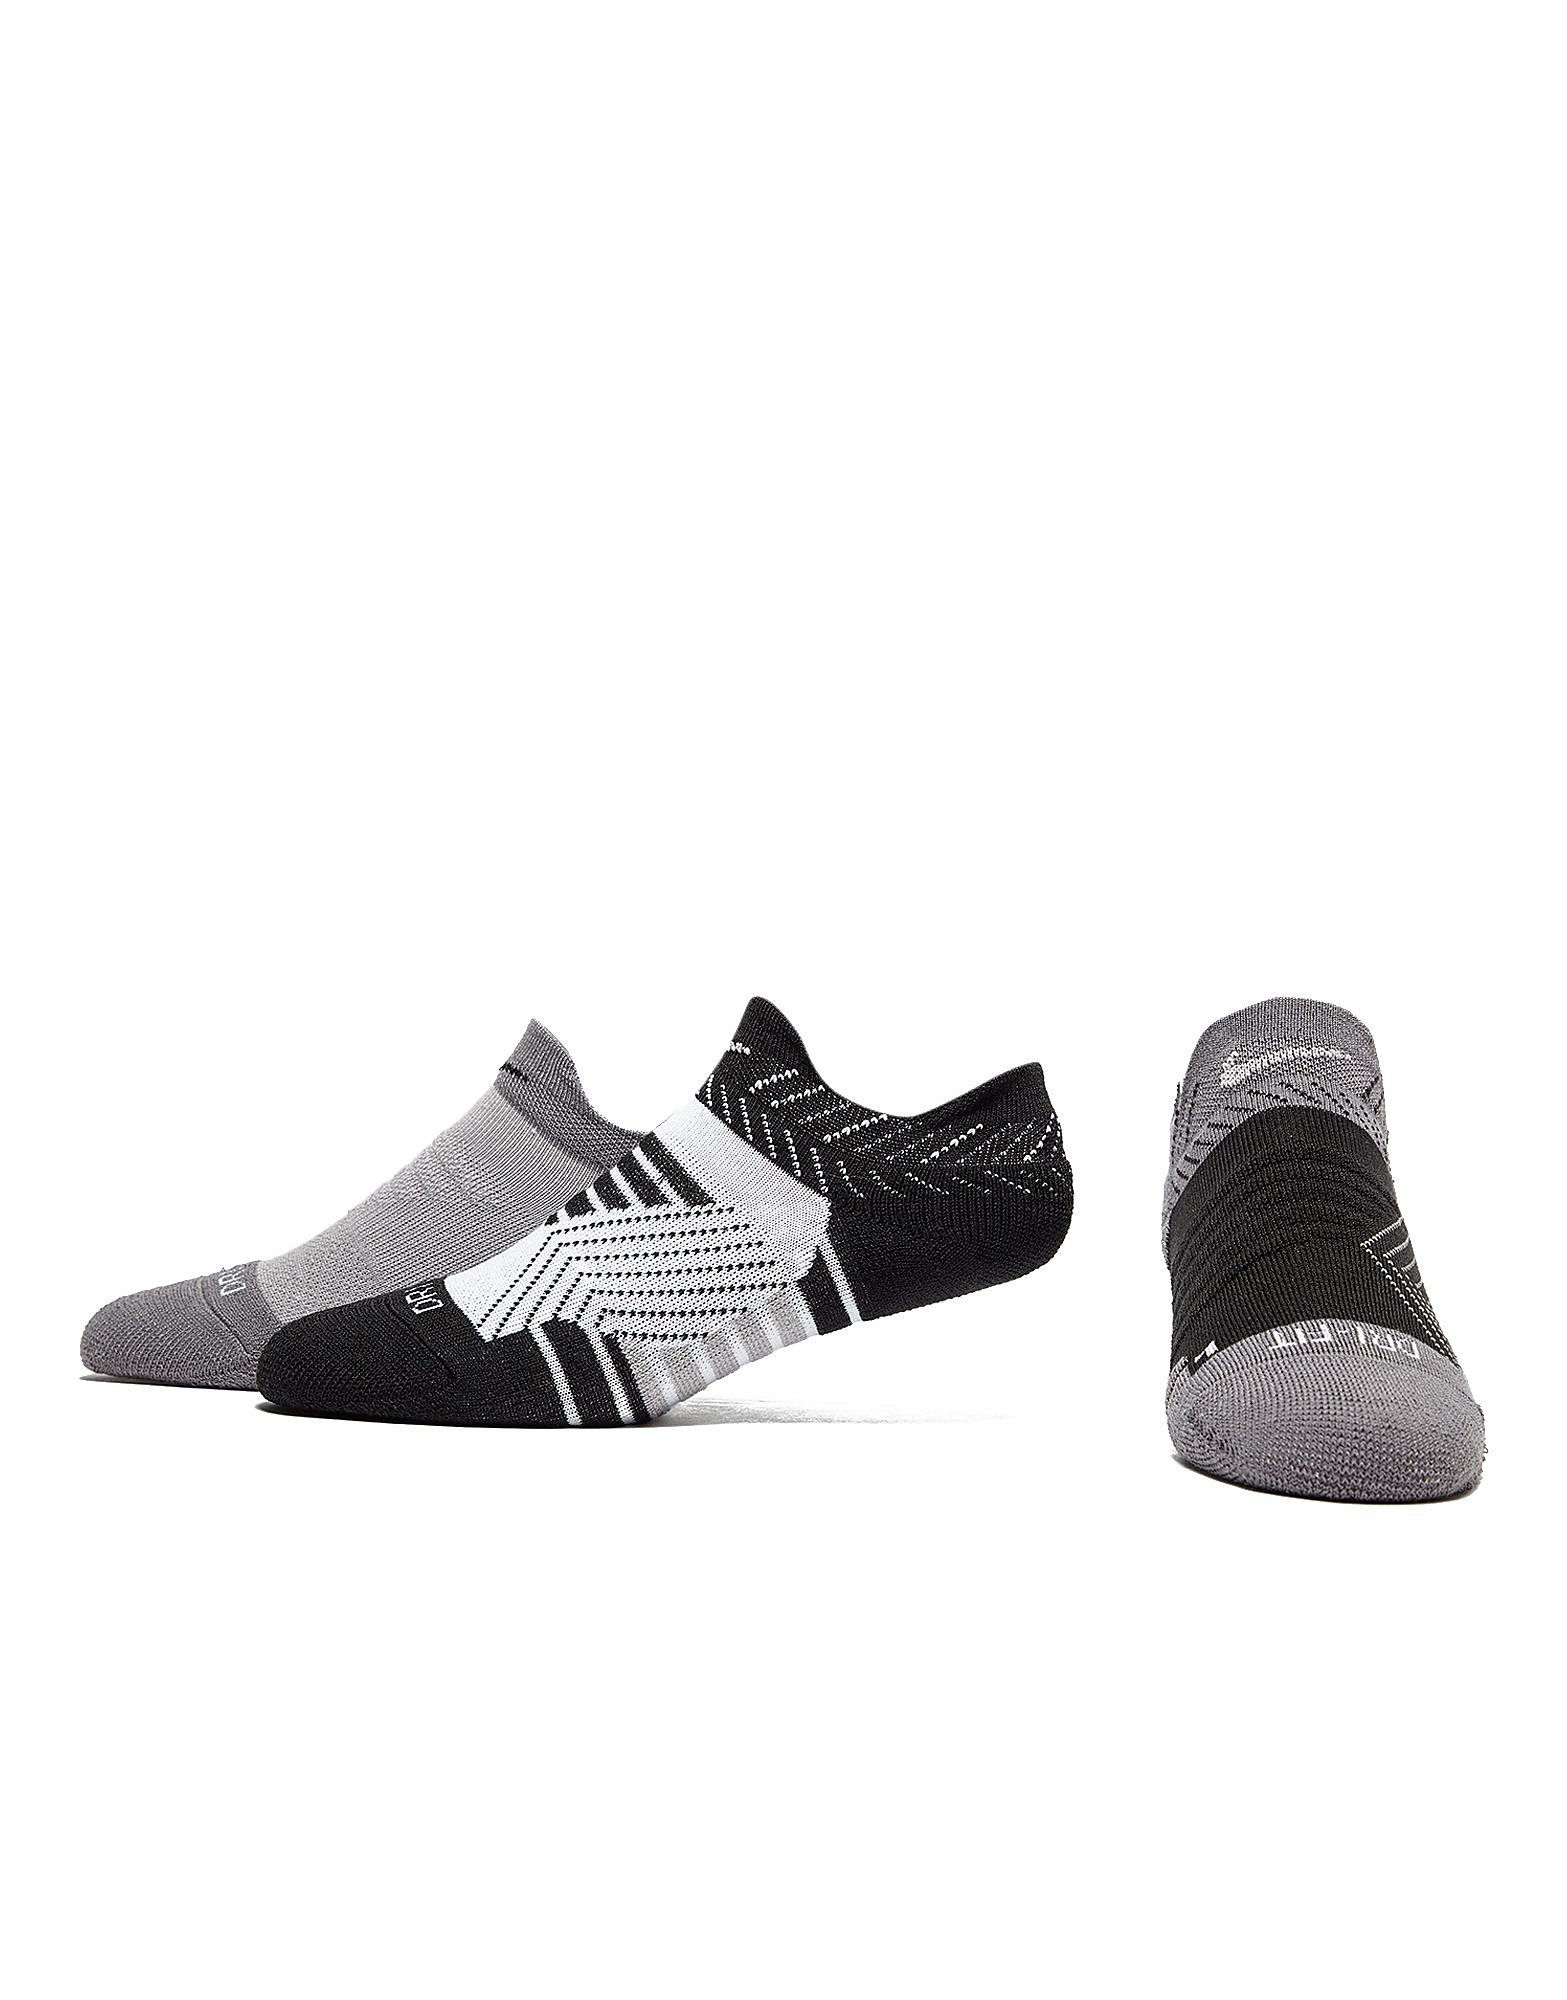 Nike Pack de chaussettes 3 Pack Cushion Homme